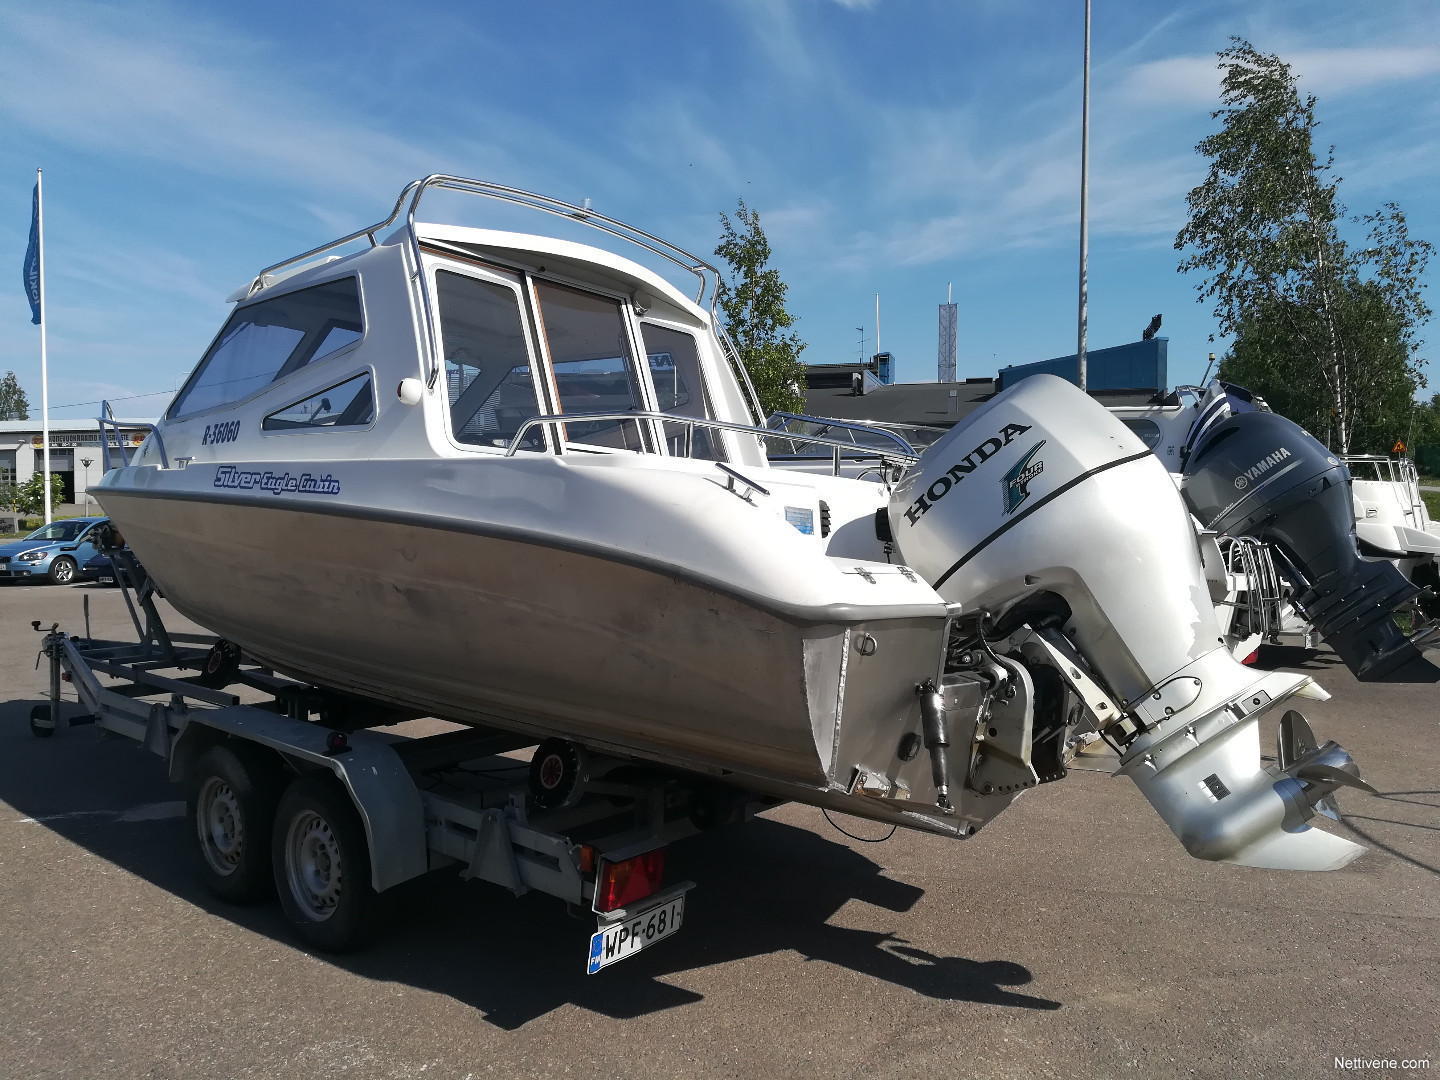 Silver Eagle 650 Cabin Motor Boat 2005 Lahti Nettivene As Well Trailers For Sale On Trailer Wiring Enlarge Image